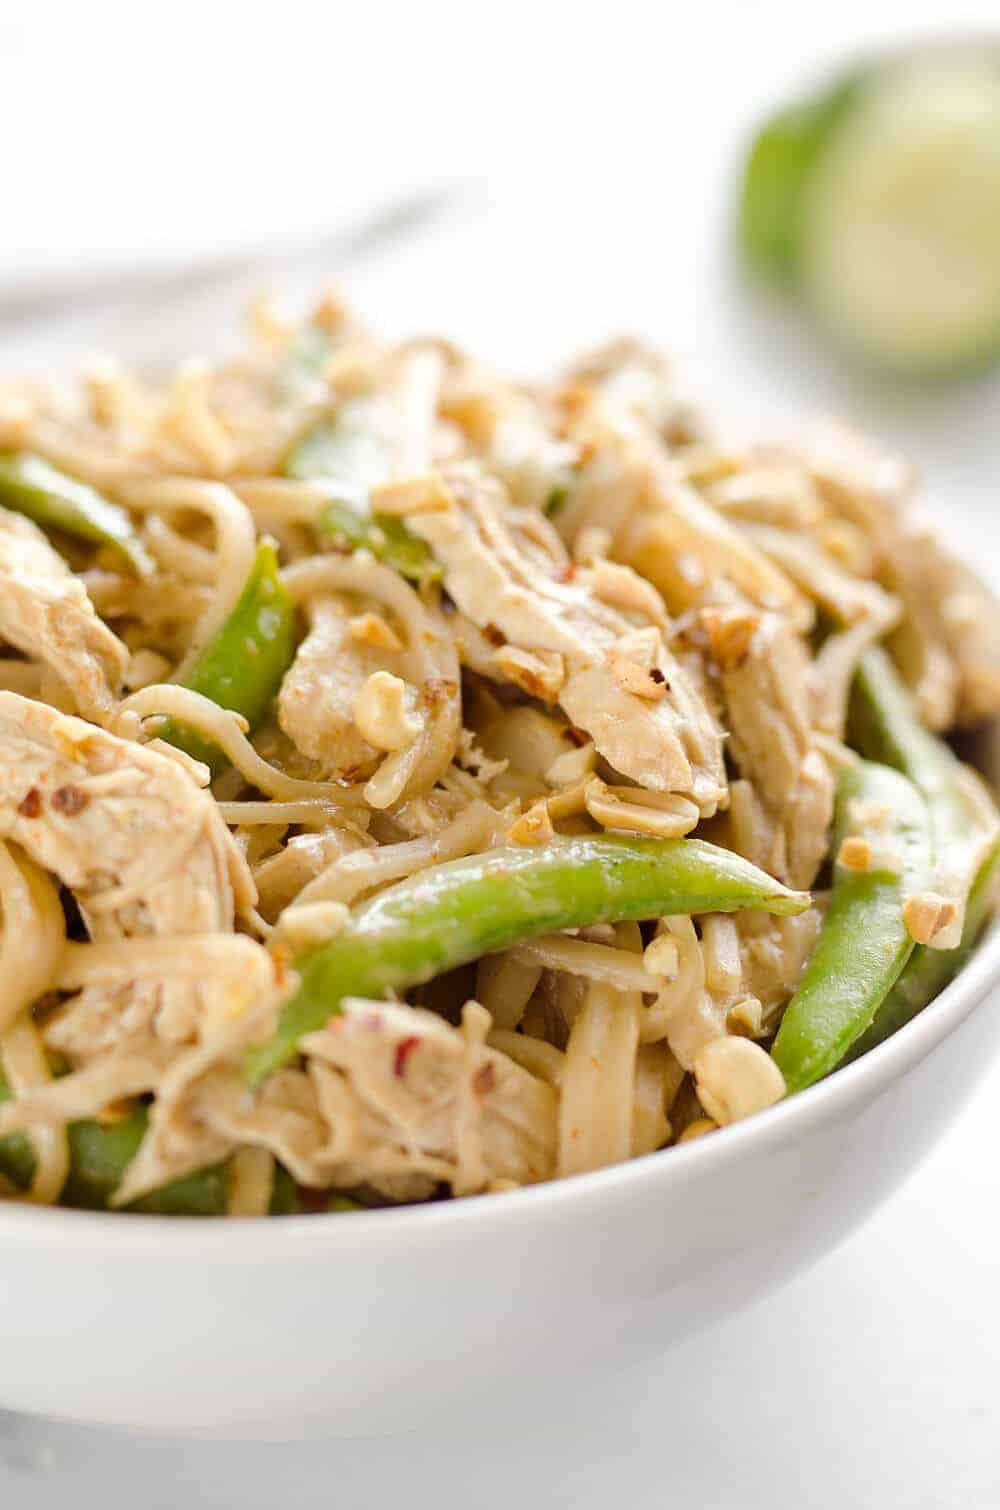 Pressure Cooker Tai Peanut Chicken Noodles | 12 Favorite Instapot Recipes